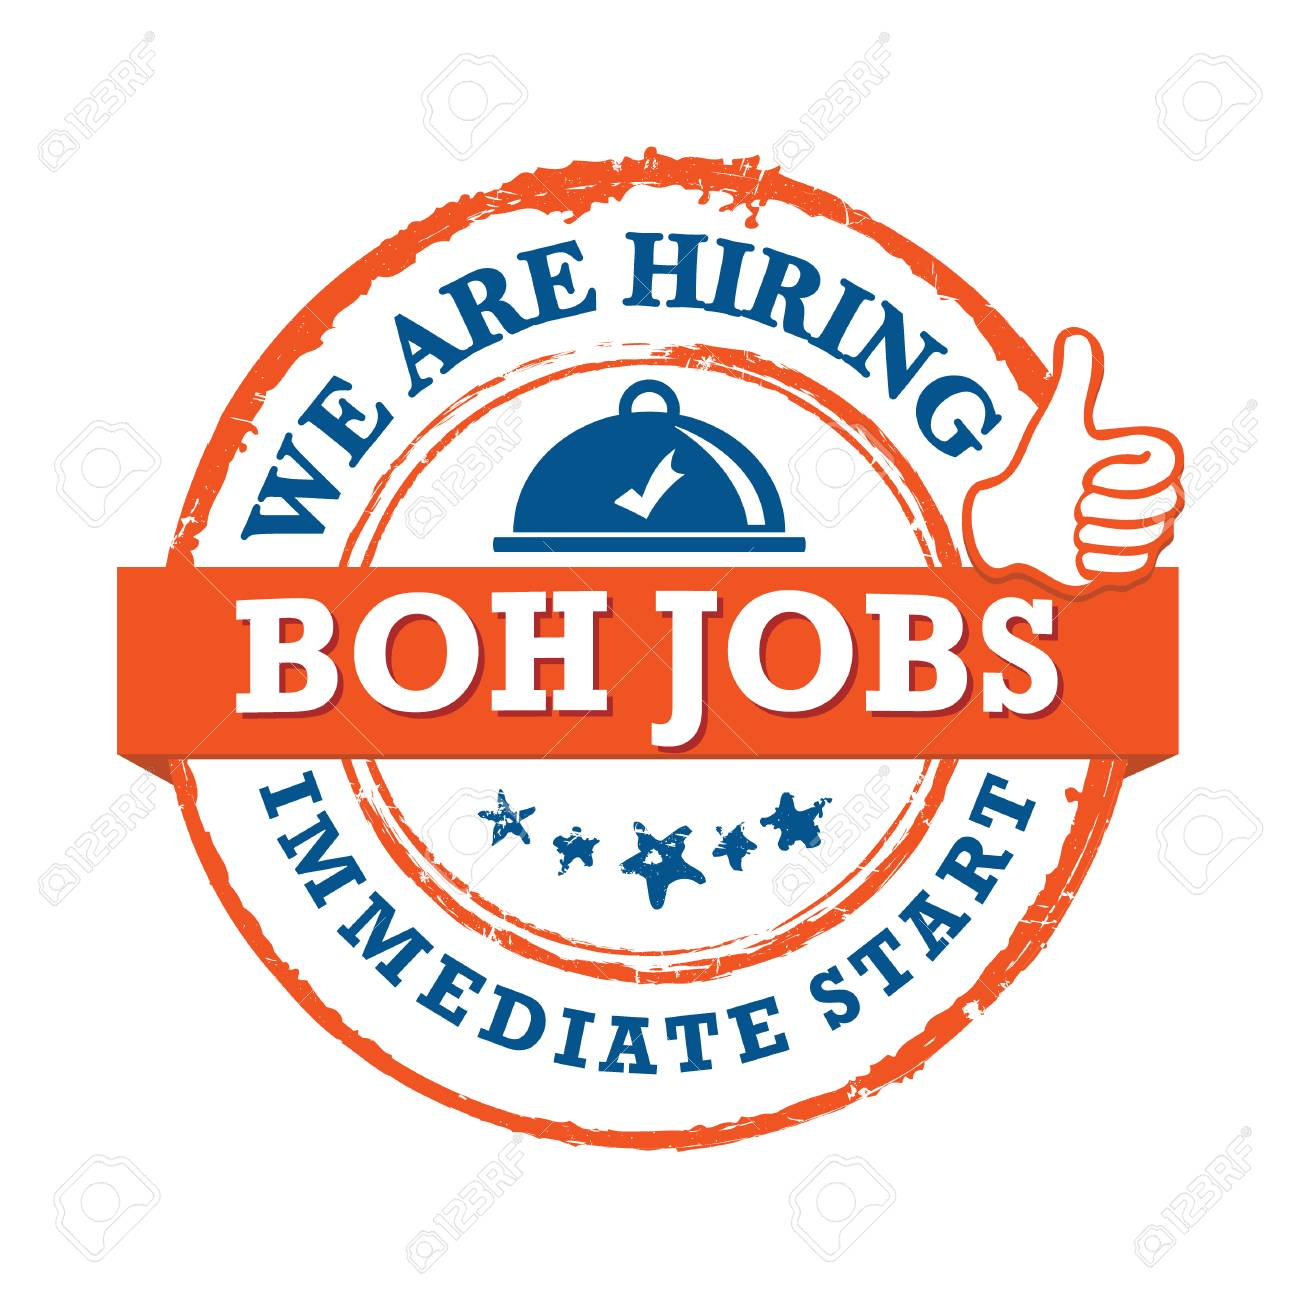 BOH jobs available - printable sticker for designed for companies